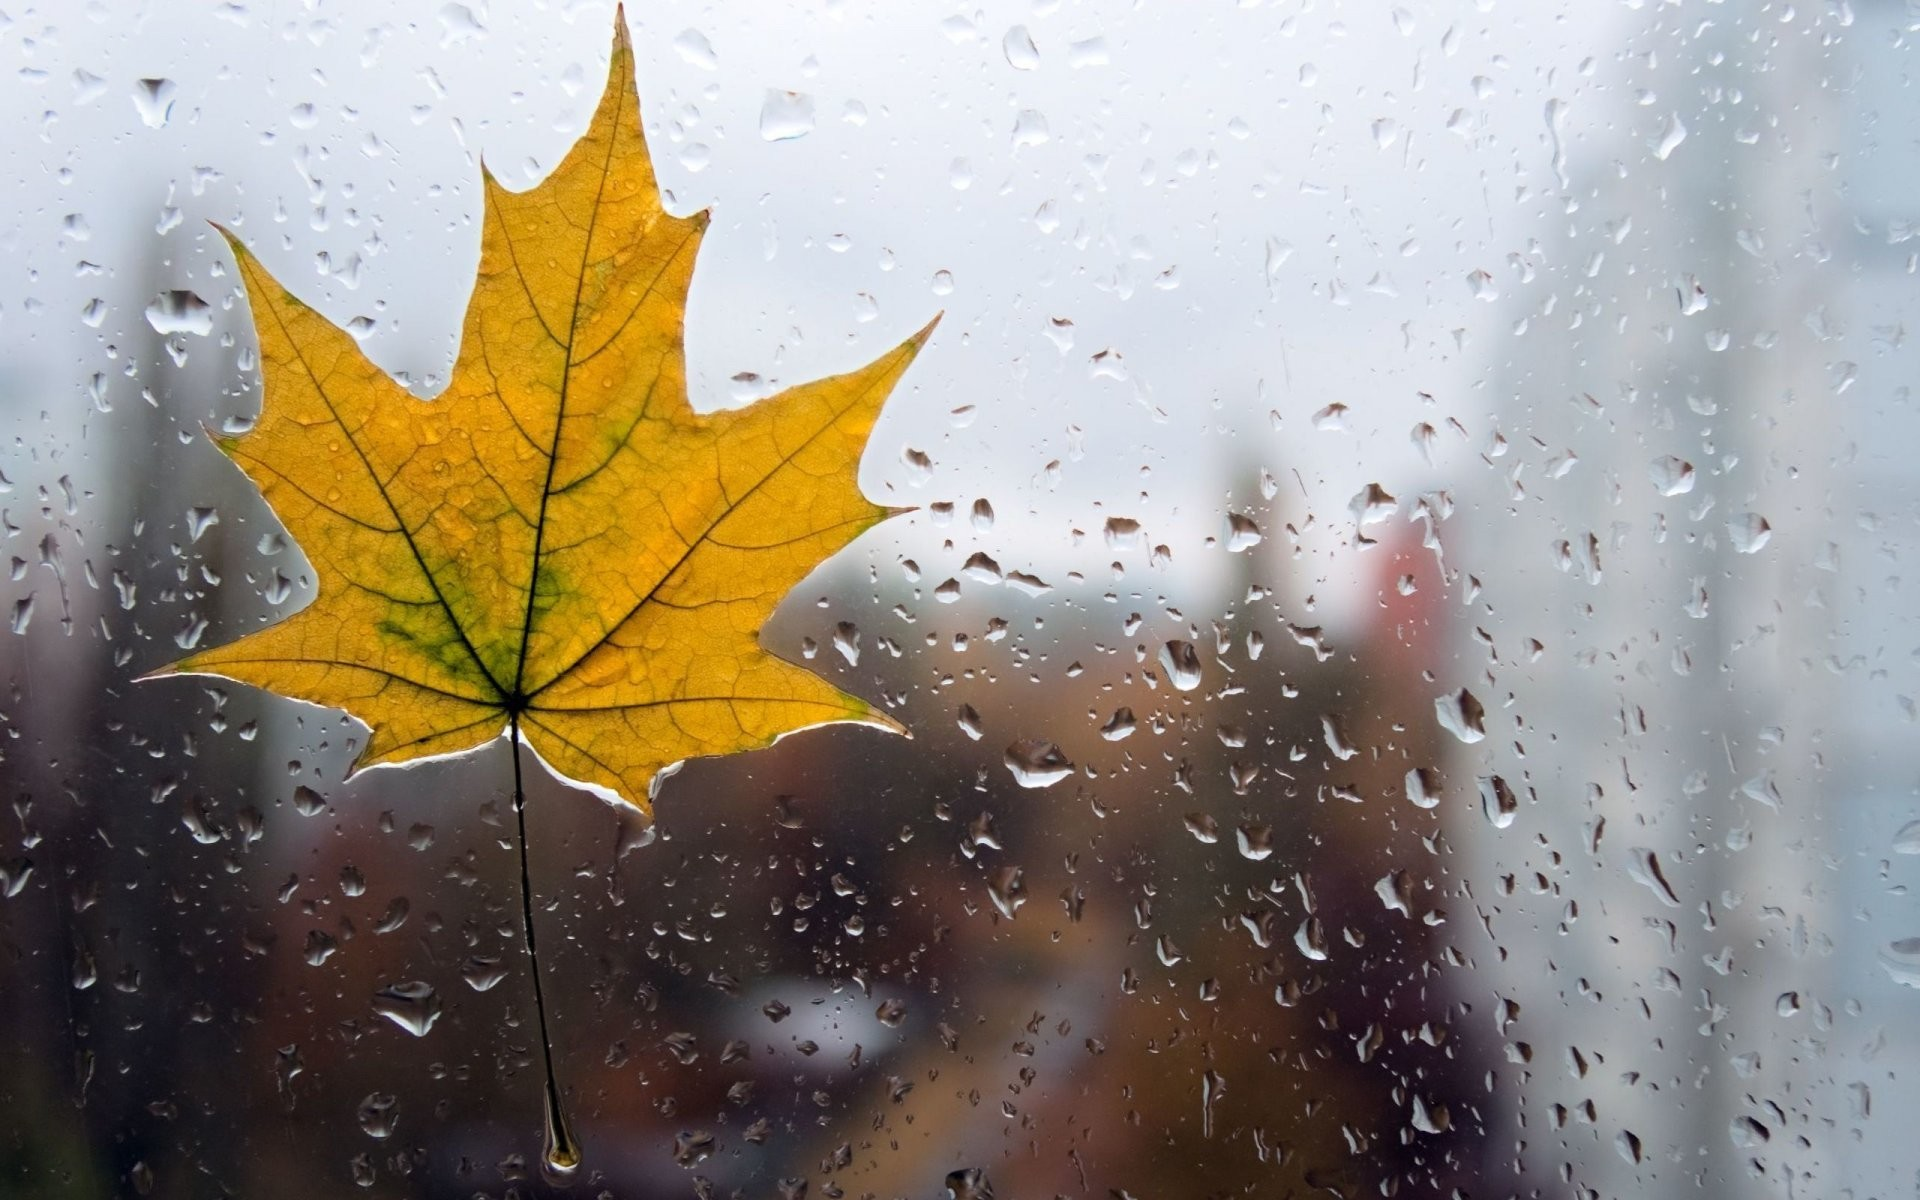 Res: 1920x1200, close up leaf form yellow rain drops water glass macro leaves background  wallpaper widescreen full screen